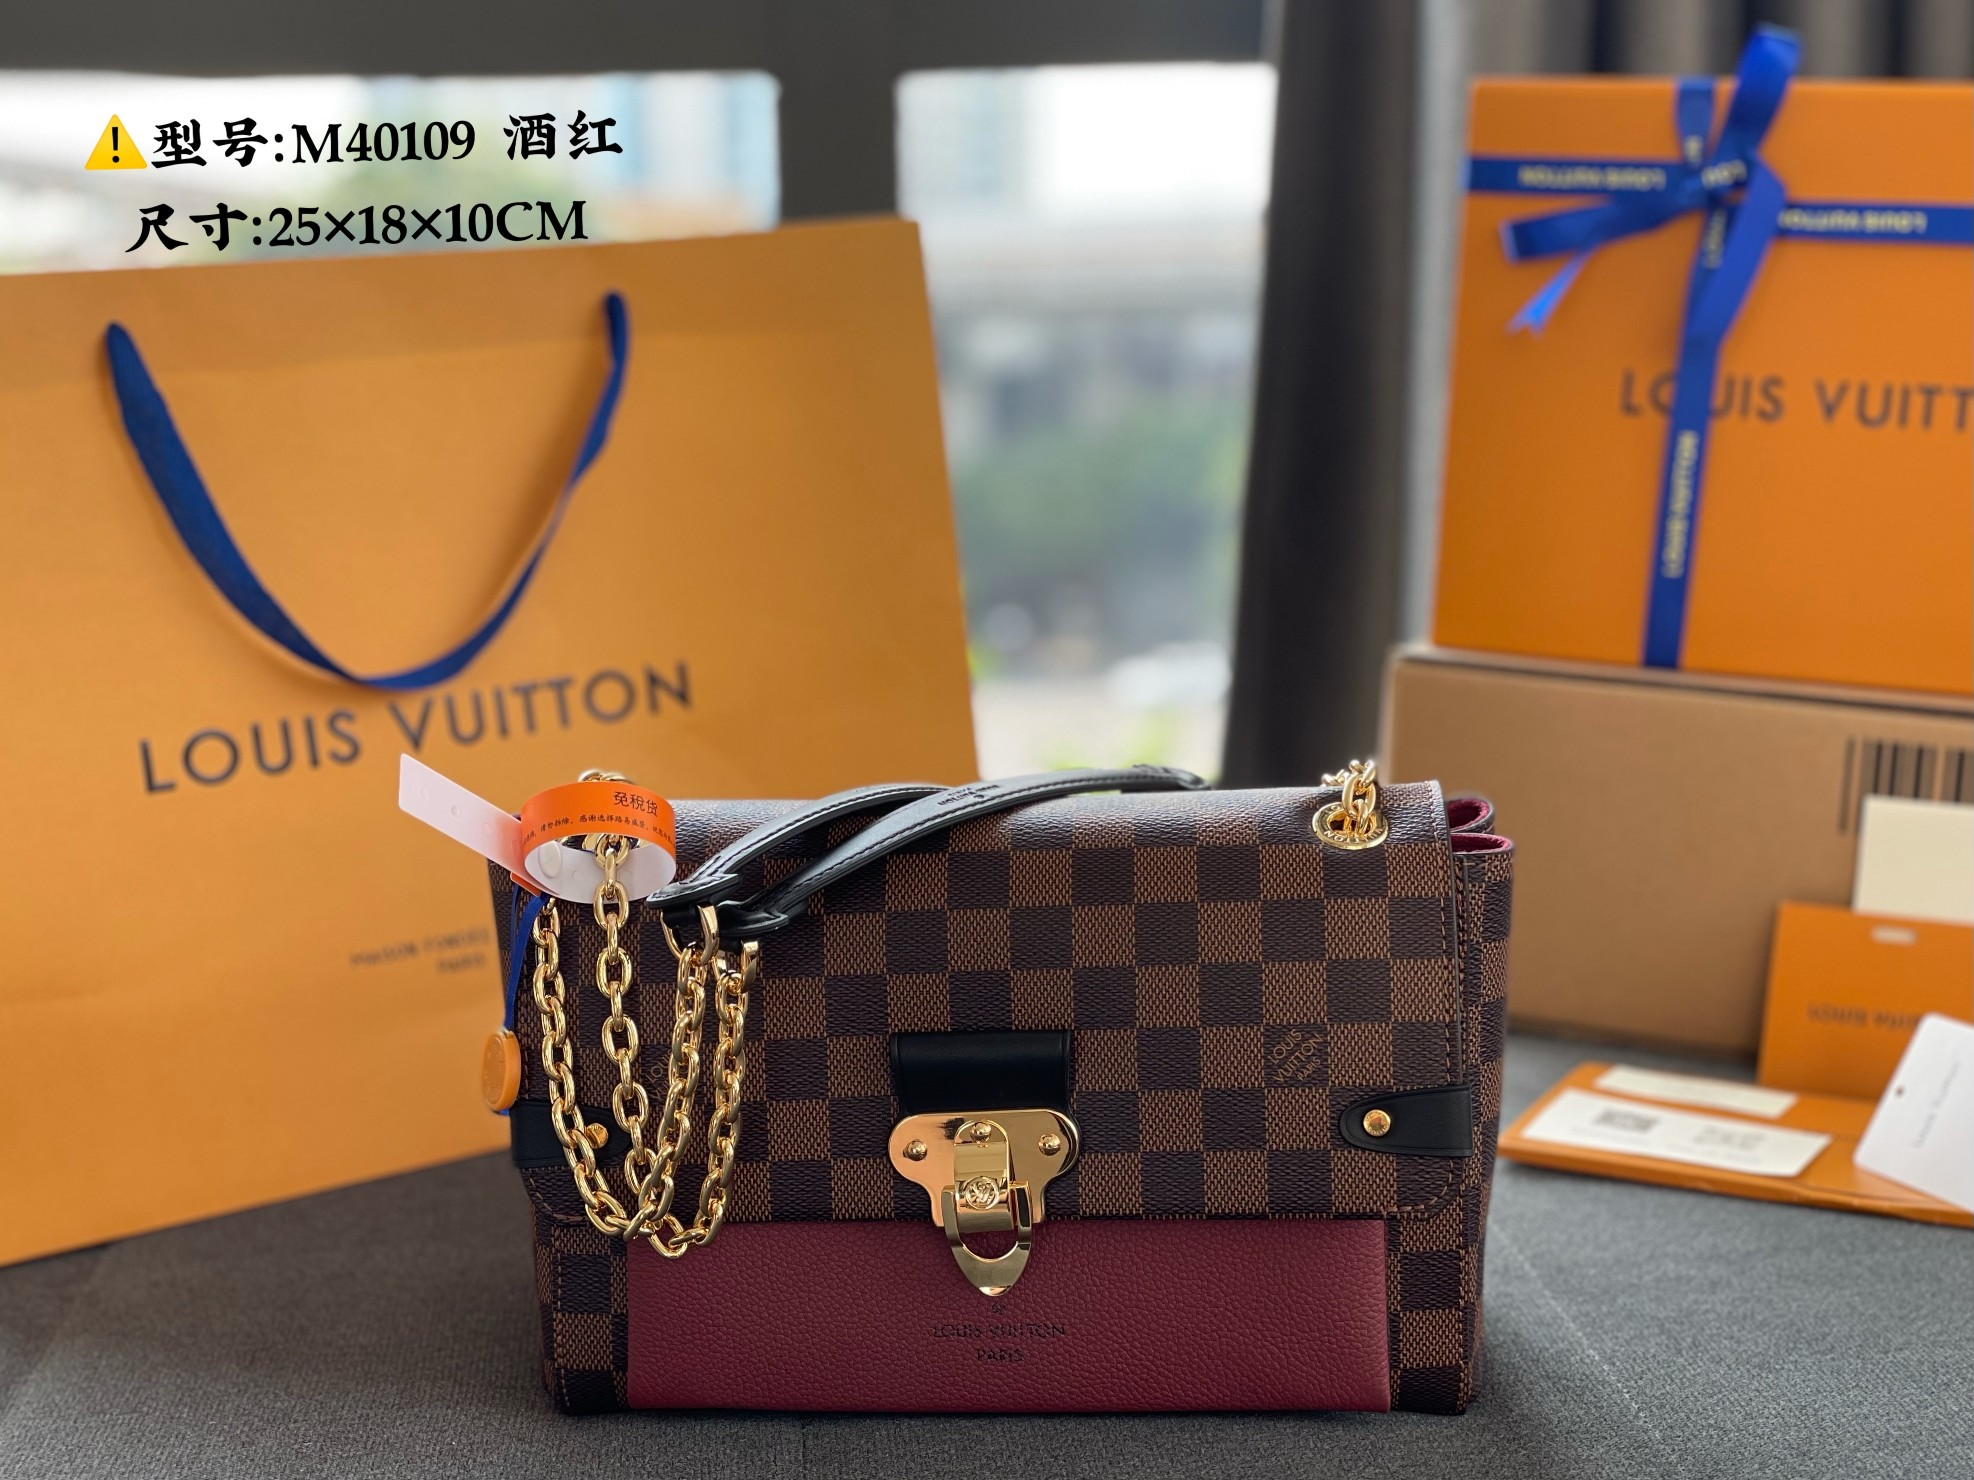 High End Louis Vuittion N40109 Vavin PM Chain Bag lack and Bordeaux Red